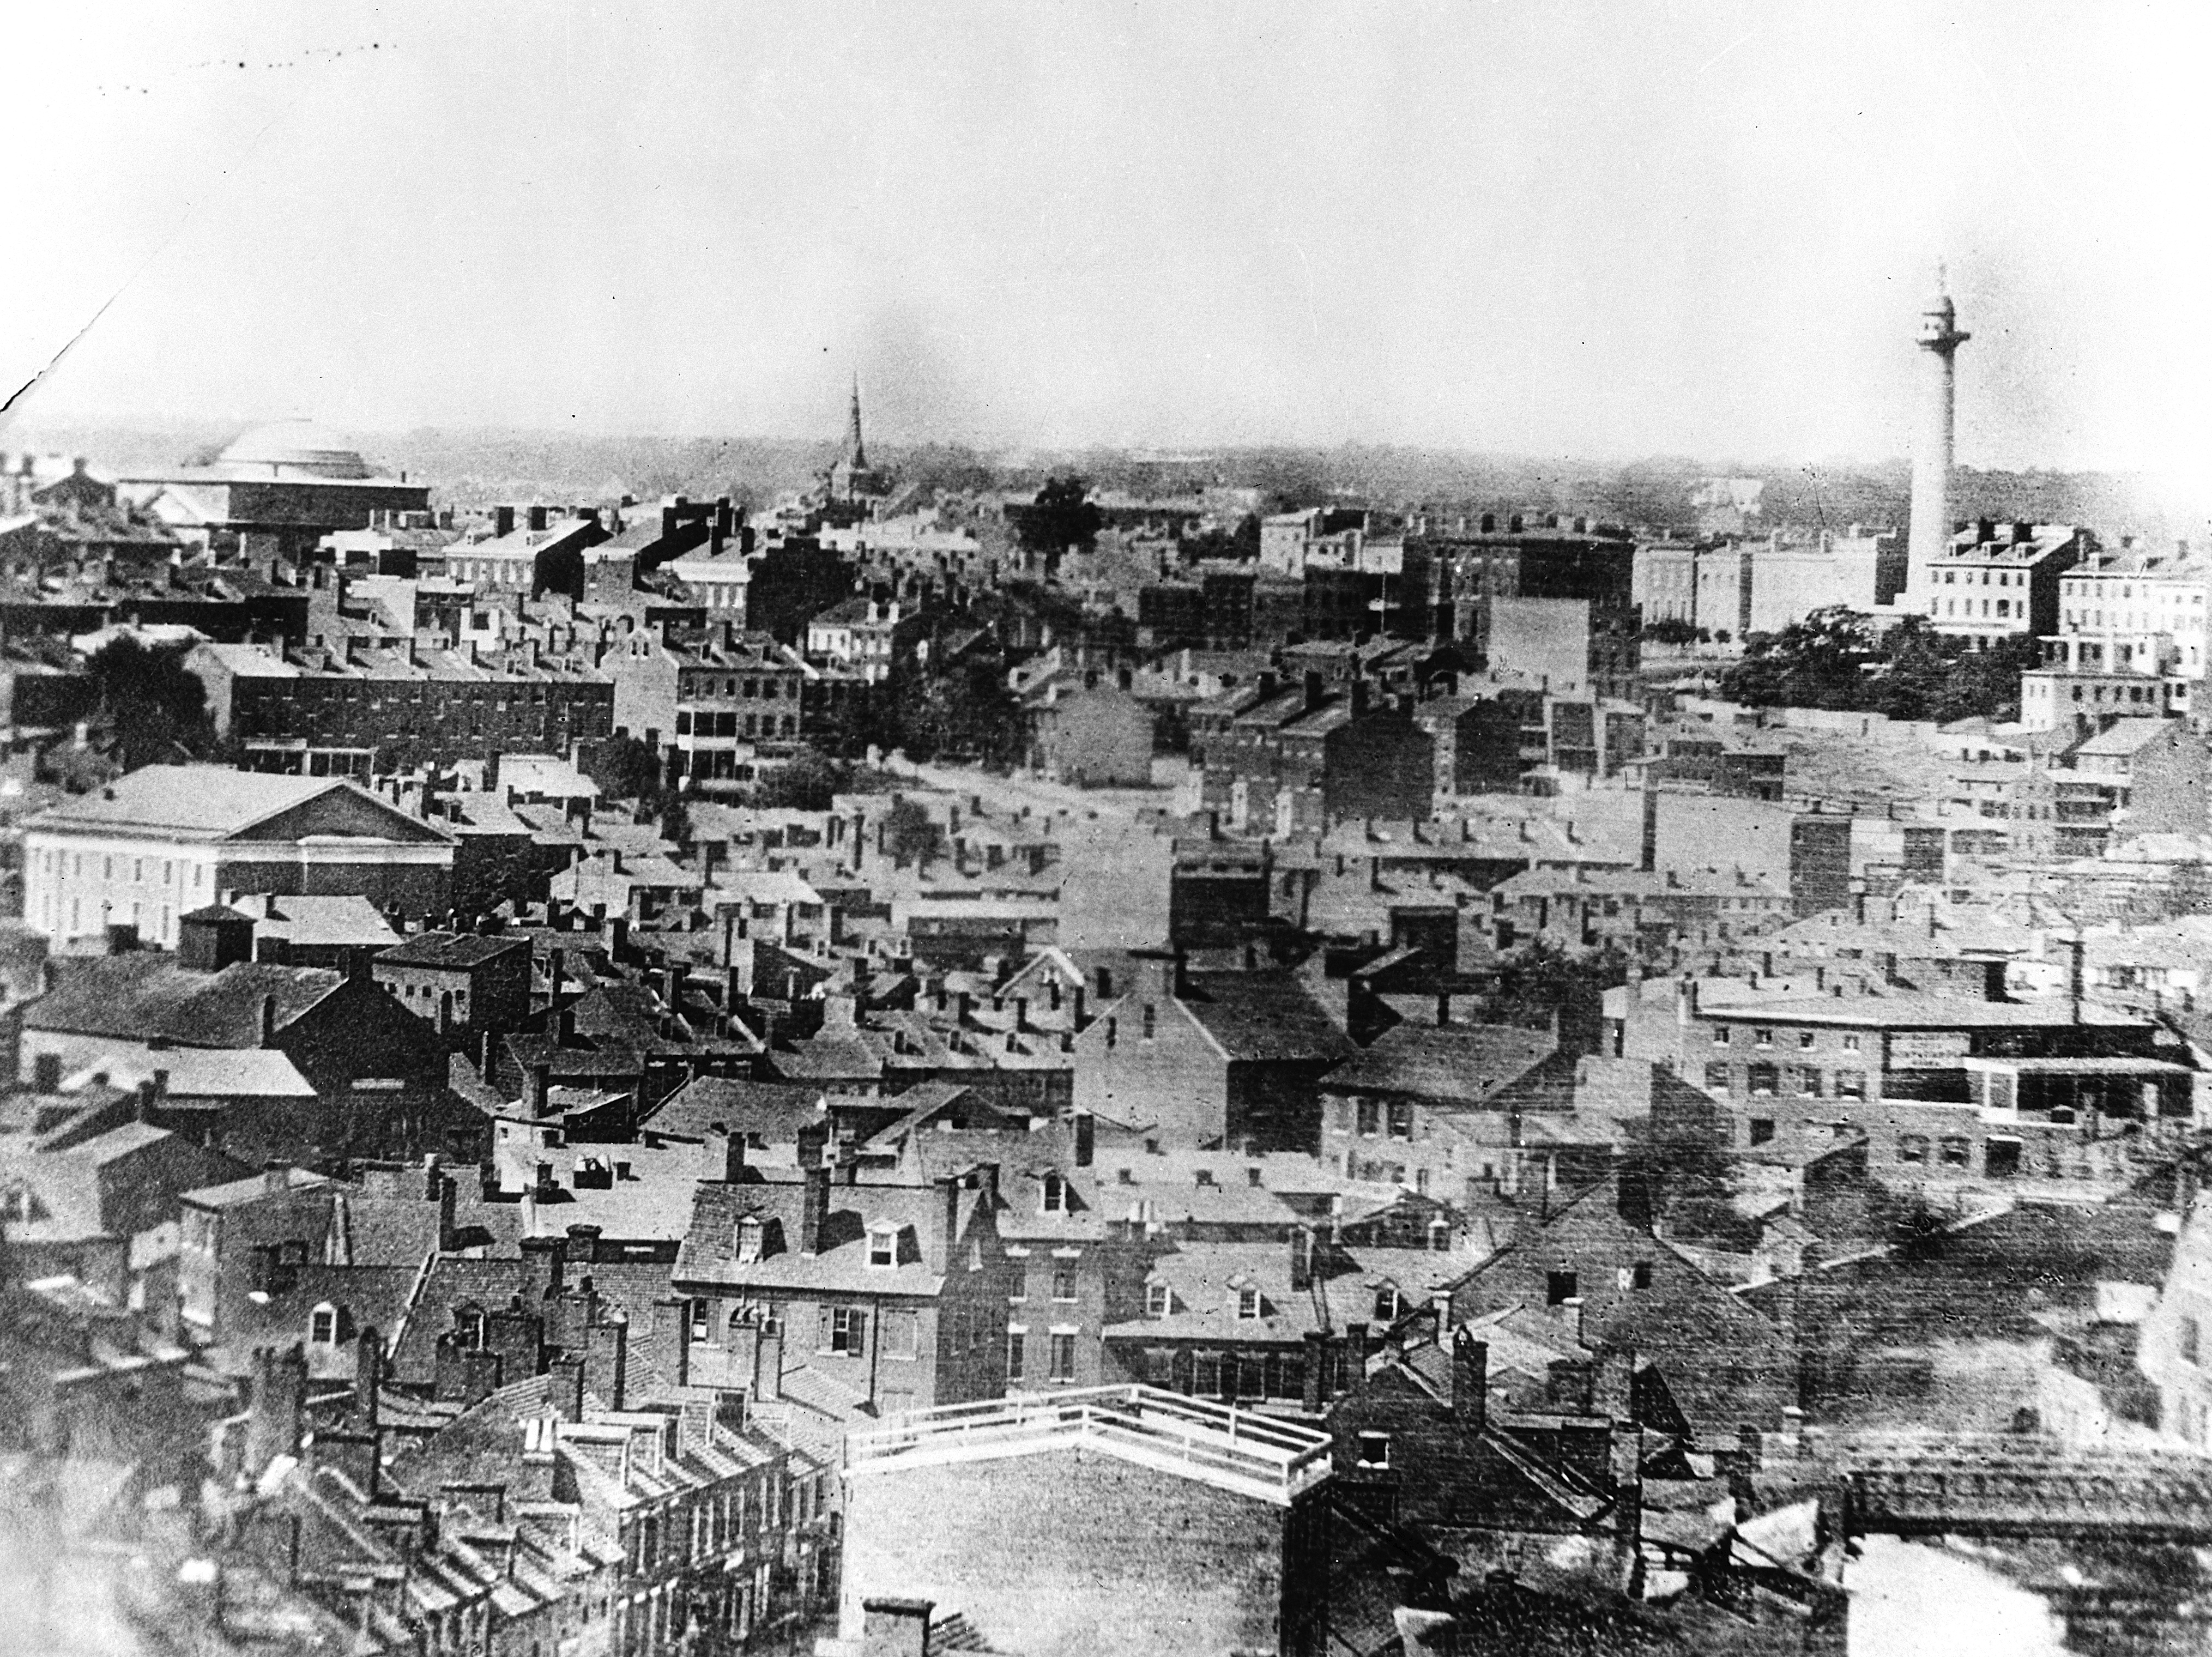 Baltimore Skyline in the 1870s